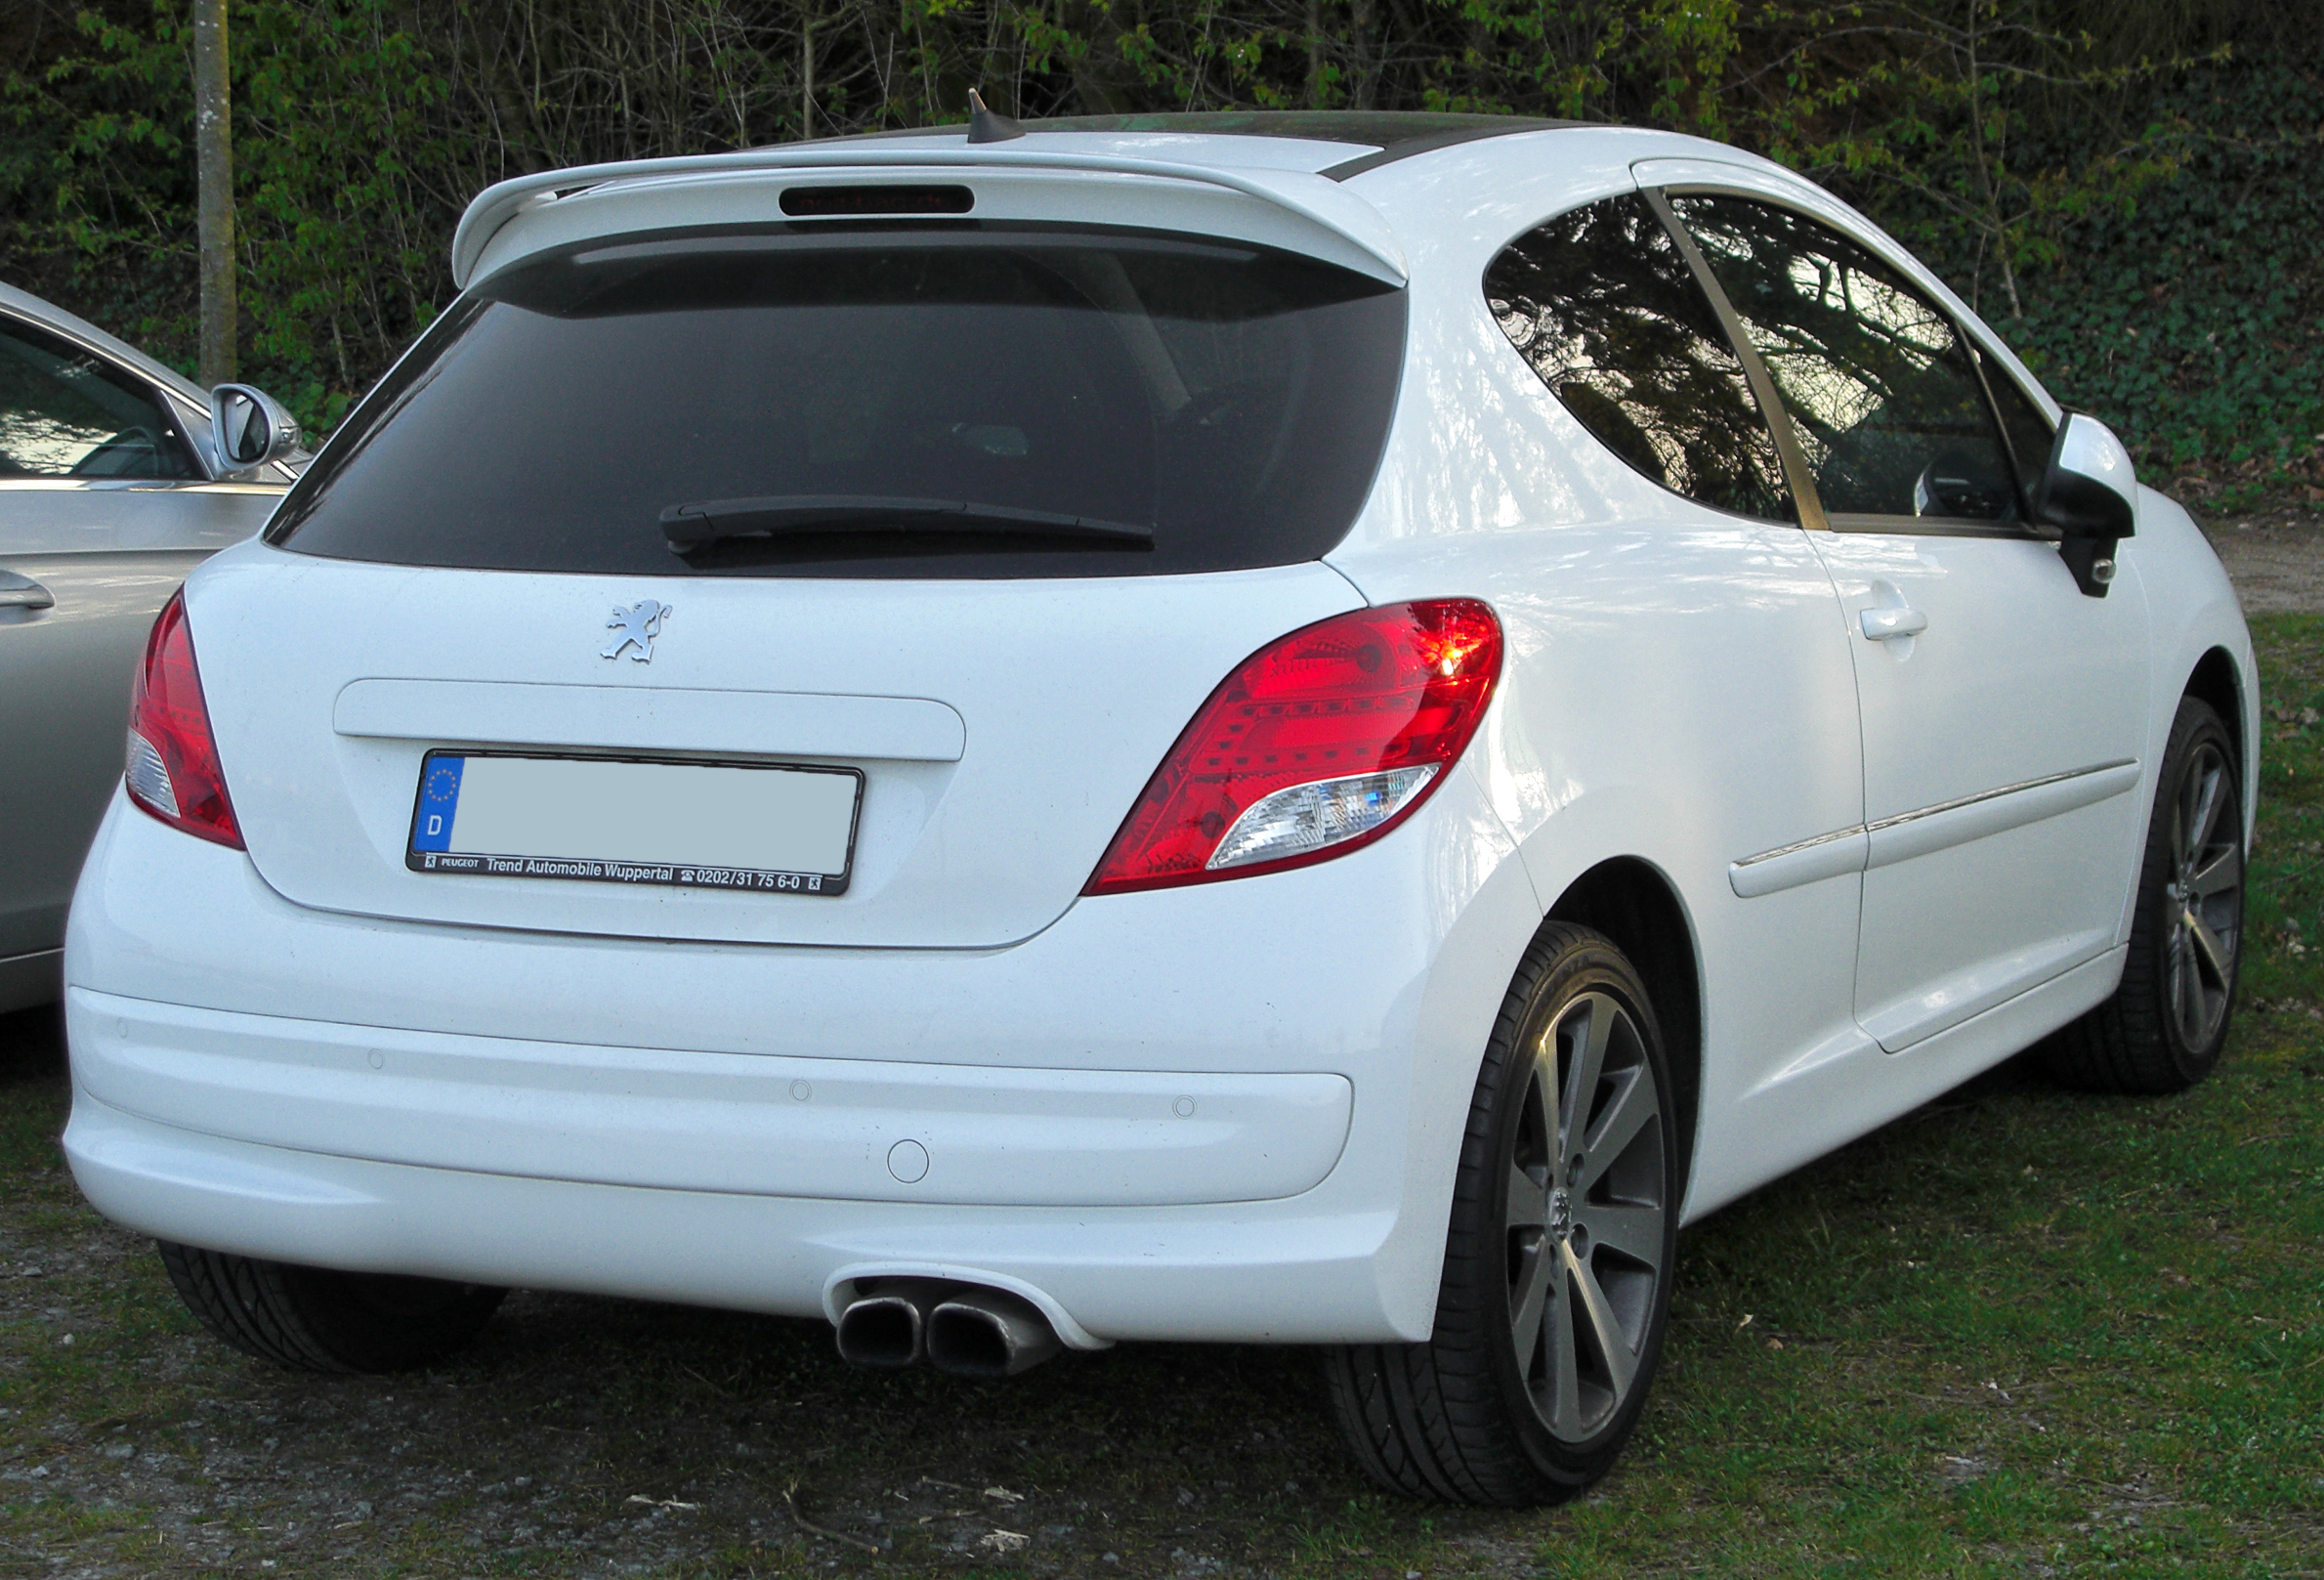 file peugeot 207 rc facelift rear wikimedia commons. Black Bedroom Furniture Sets. Home Design Ideas